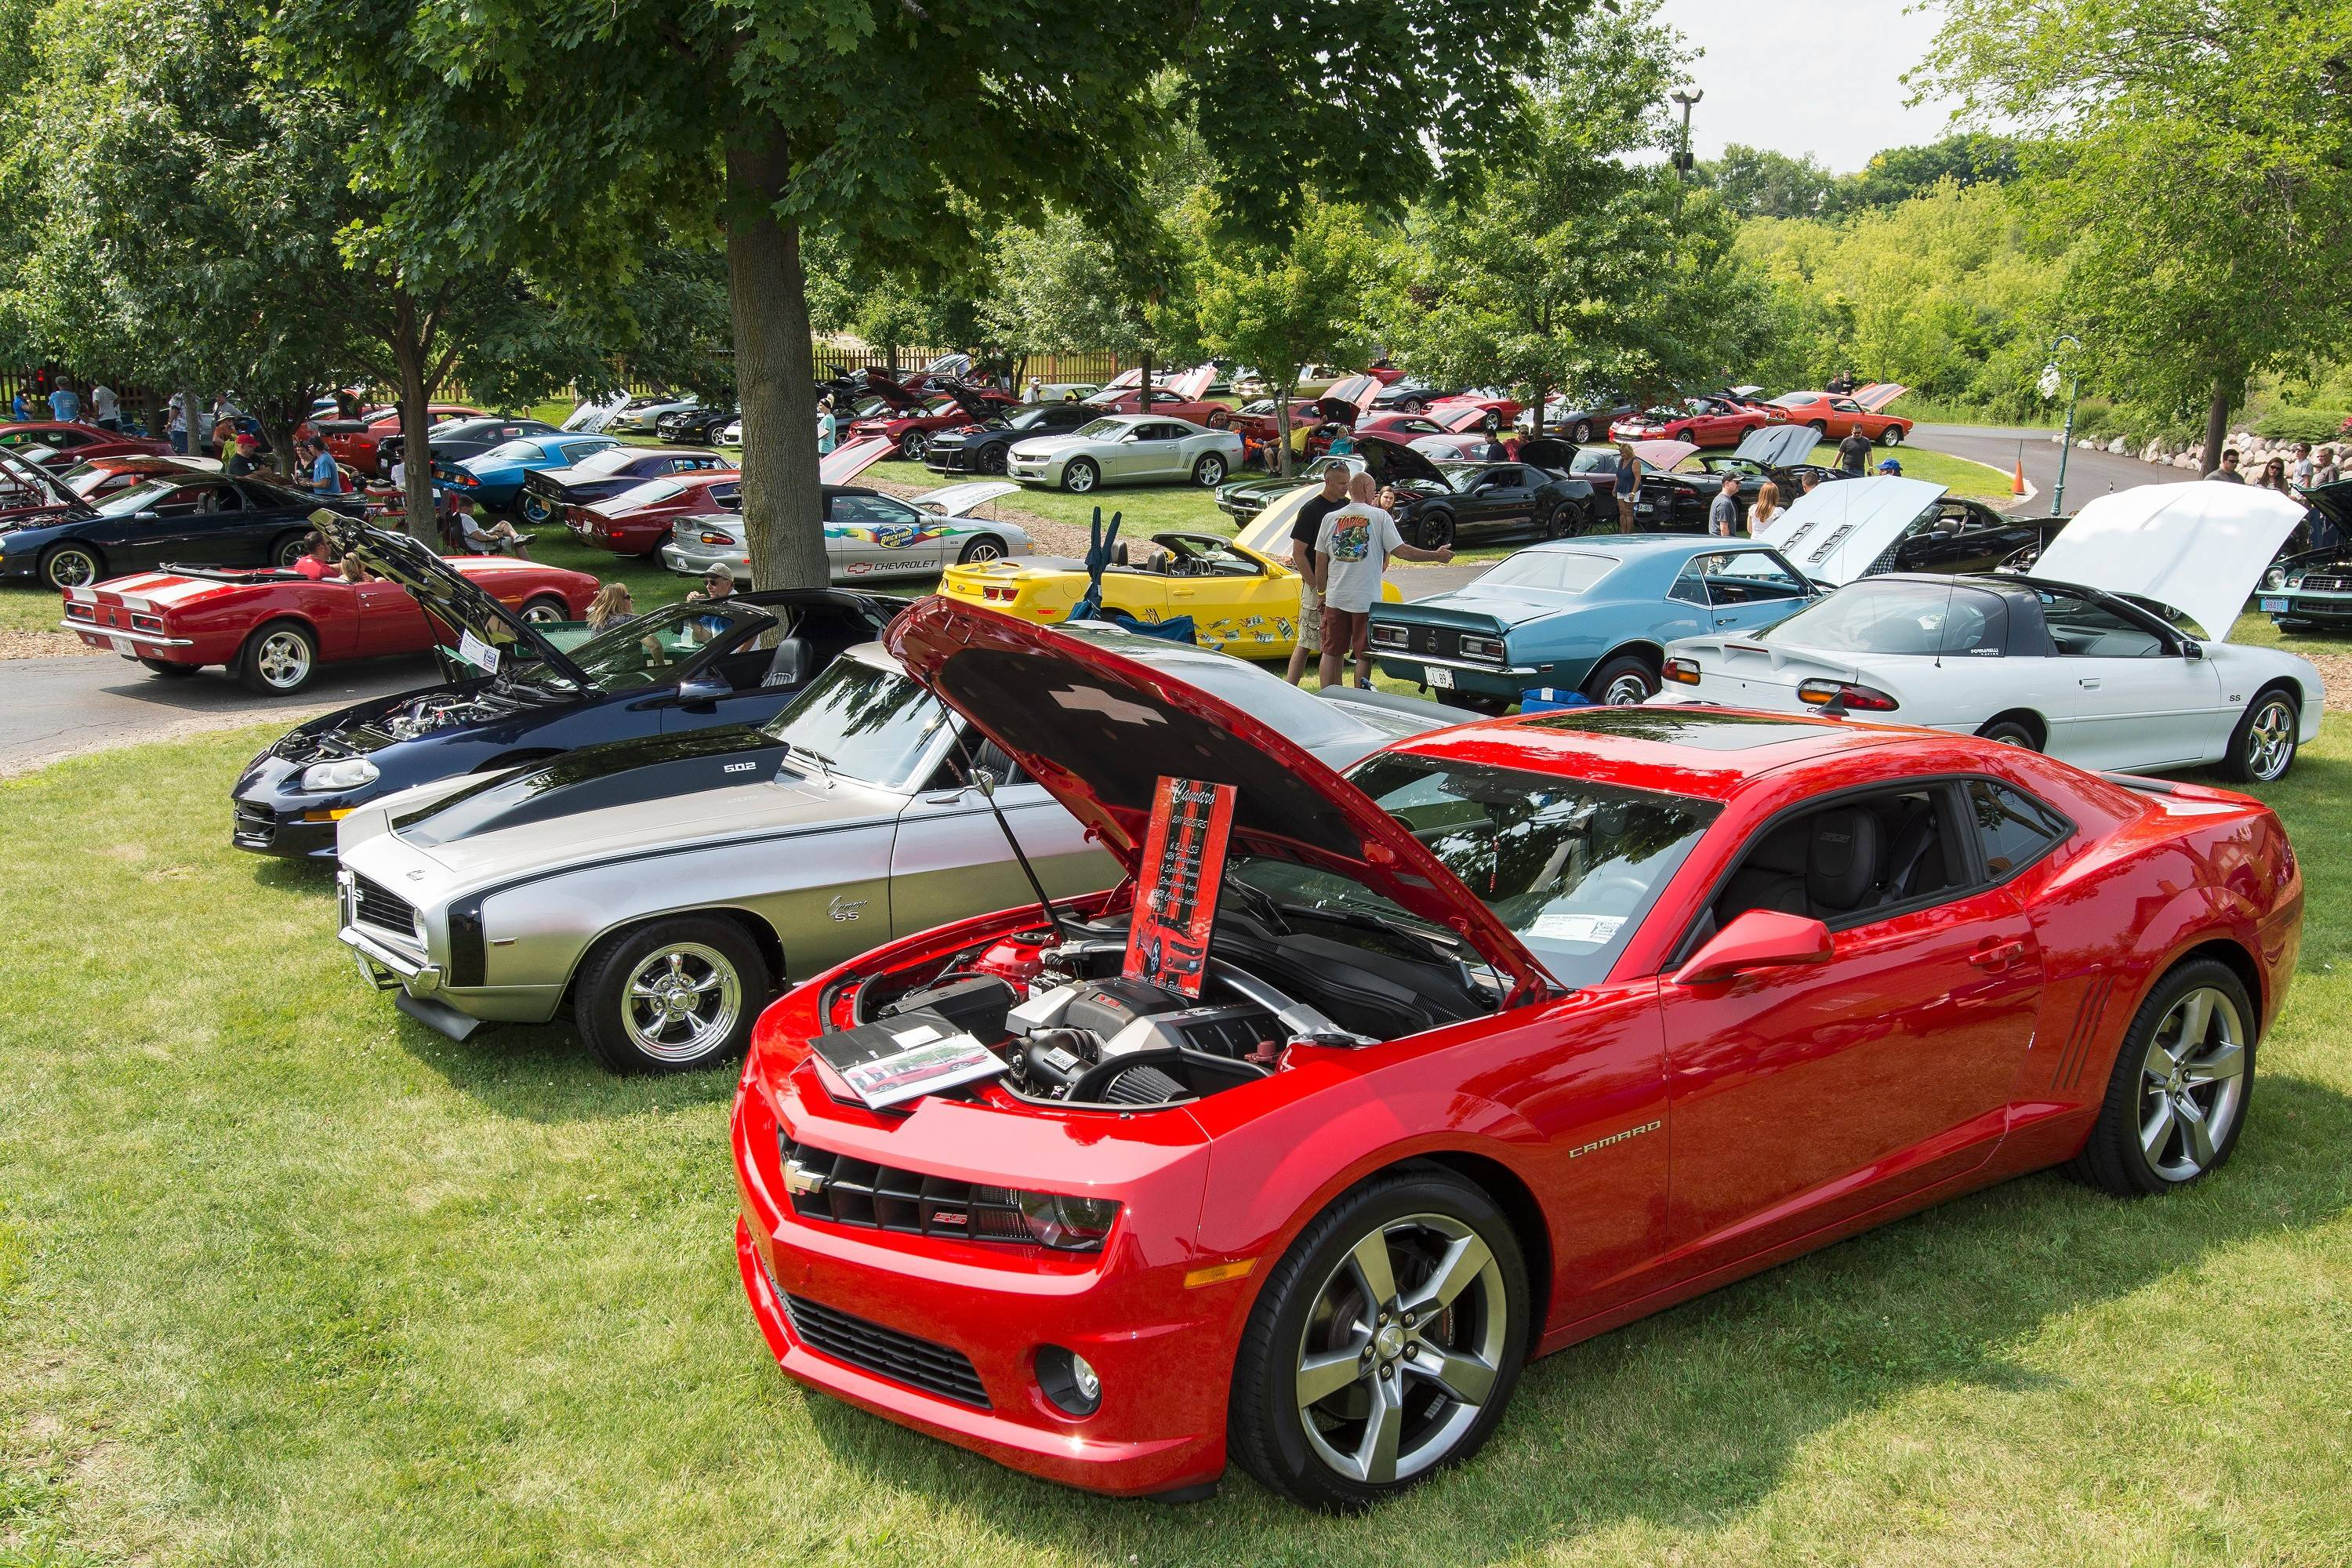 The third annual All Camaro Car Show took place last weekend on the Volo Auto Museum grounds in Volo. The event is hosted by the Illinois Camaro Club.